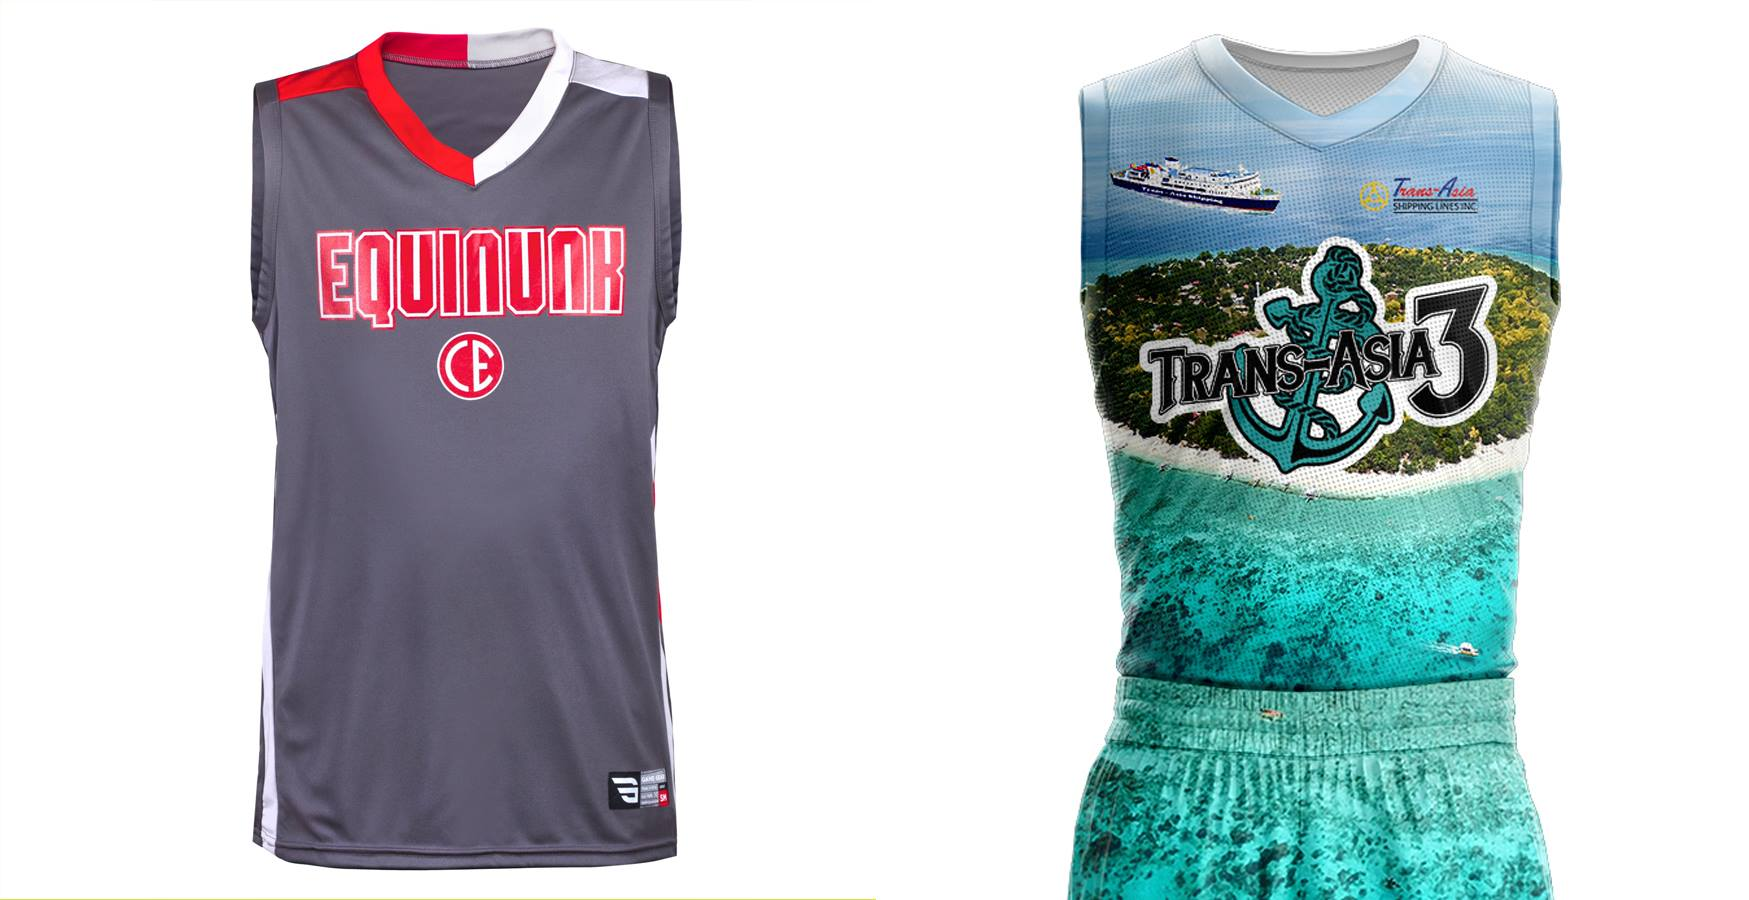 Full Sublimation Jersey vs Not